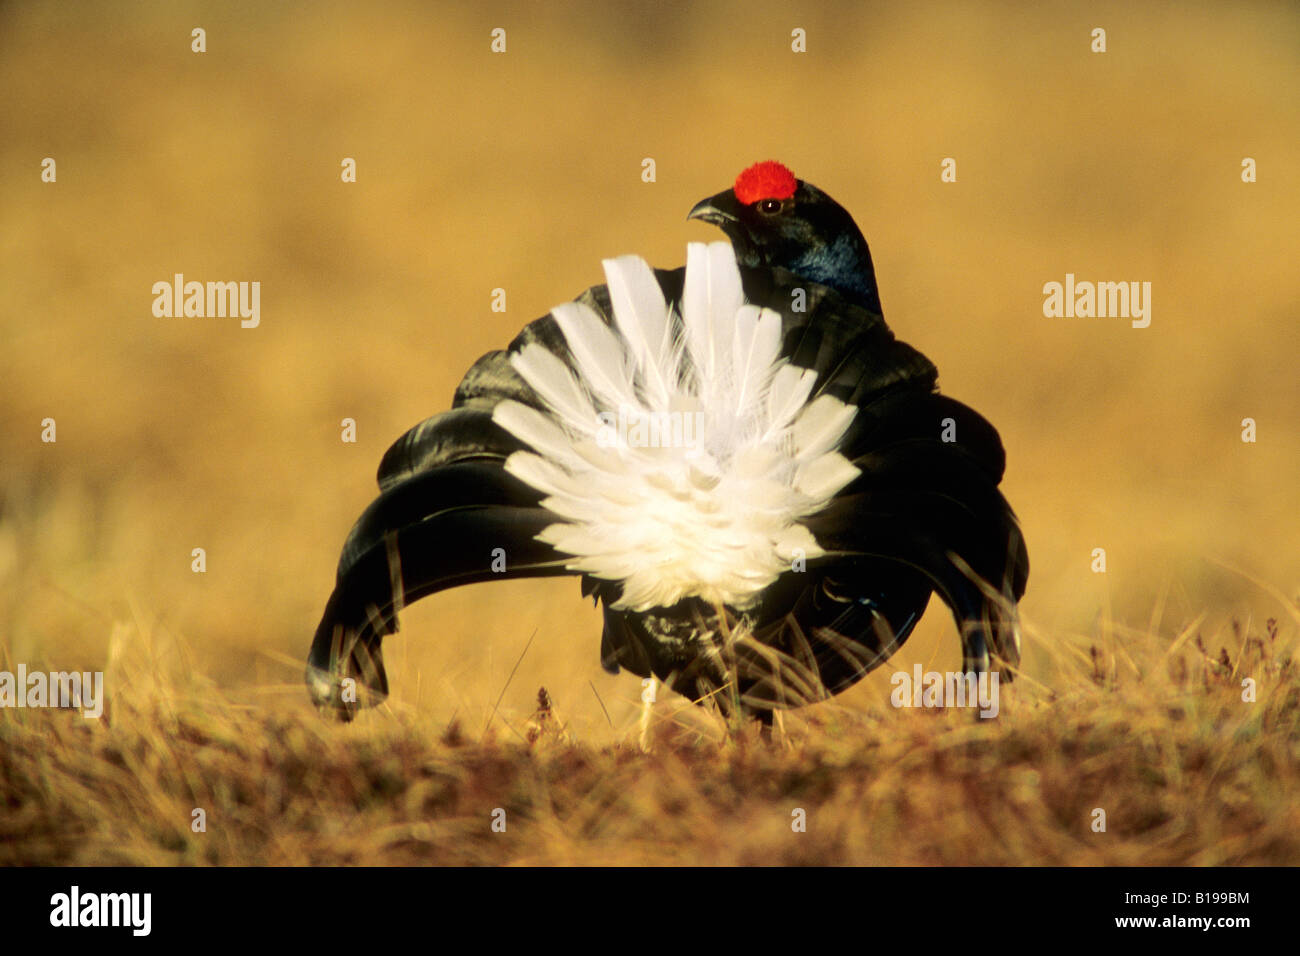 Courting male black grouse (Tetrao tetrix), central Sweden - Stock Image